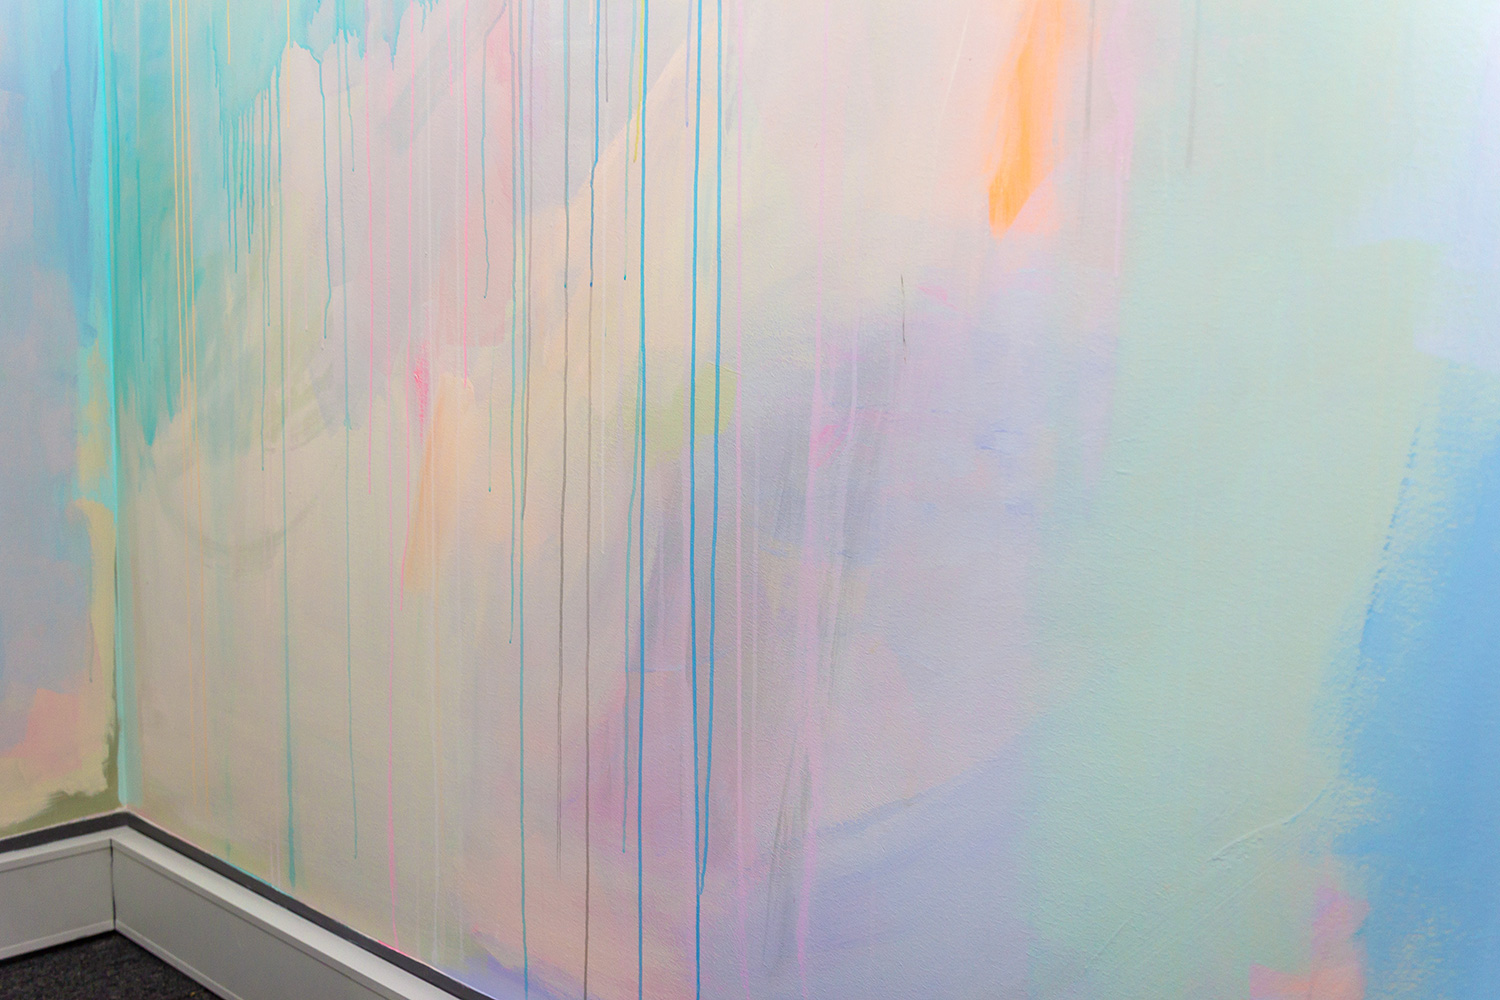 Close up detail of pastel mural featuring dripping paint.